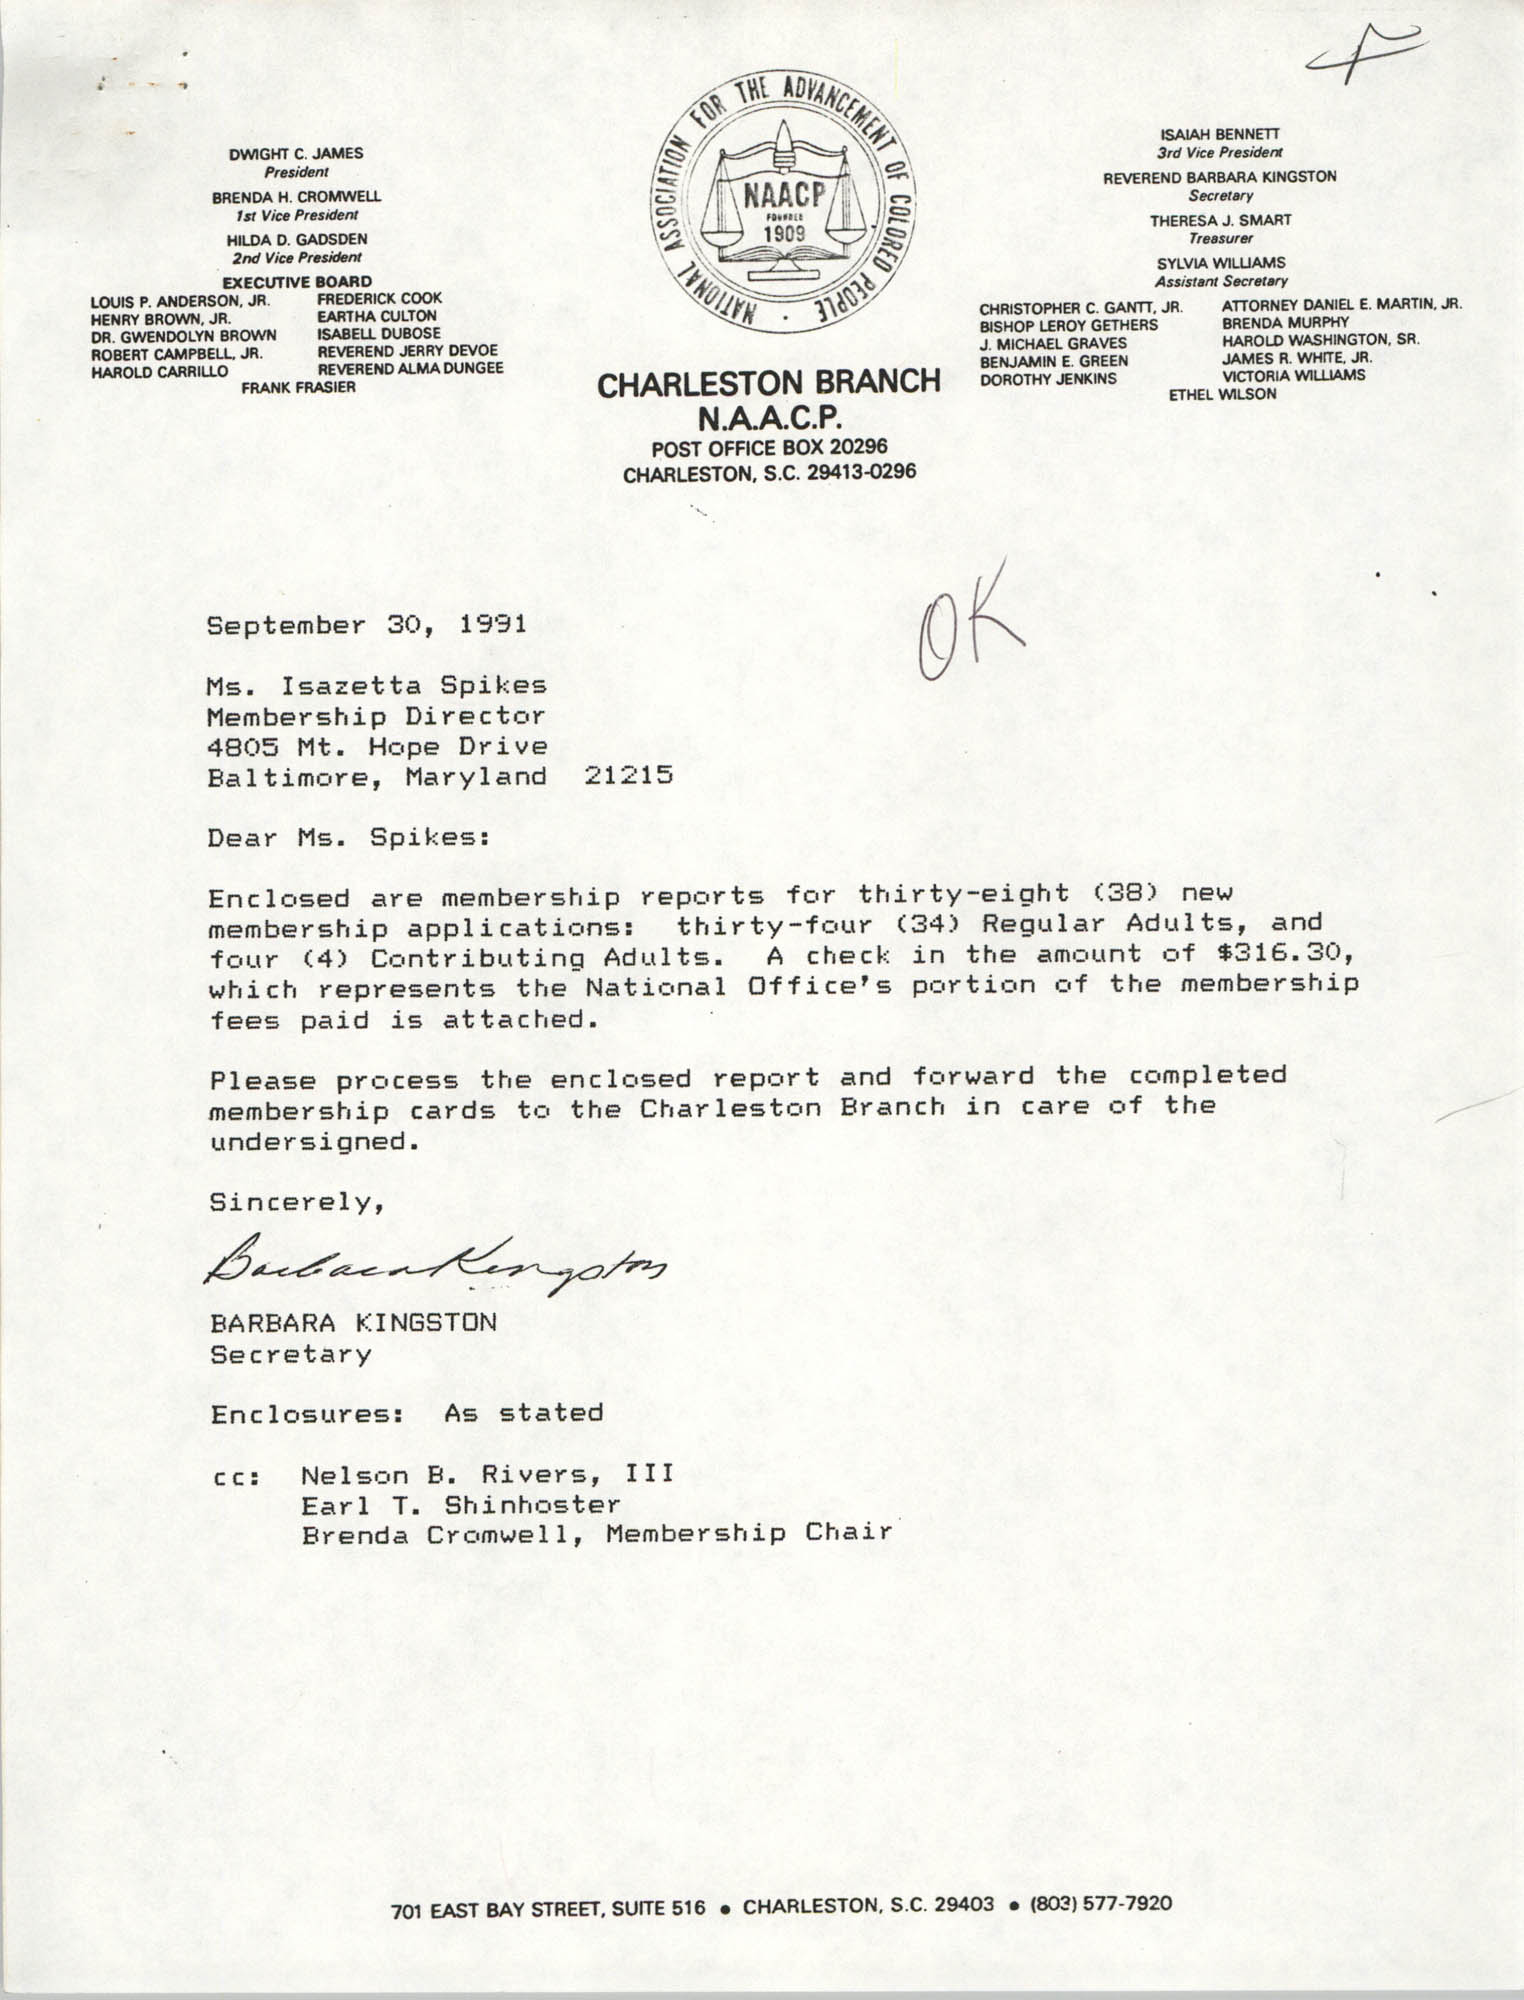 Letter from Barbara Kingston to Isazetta Spikes, September 30, 1991